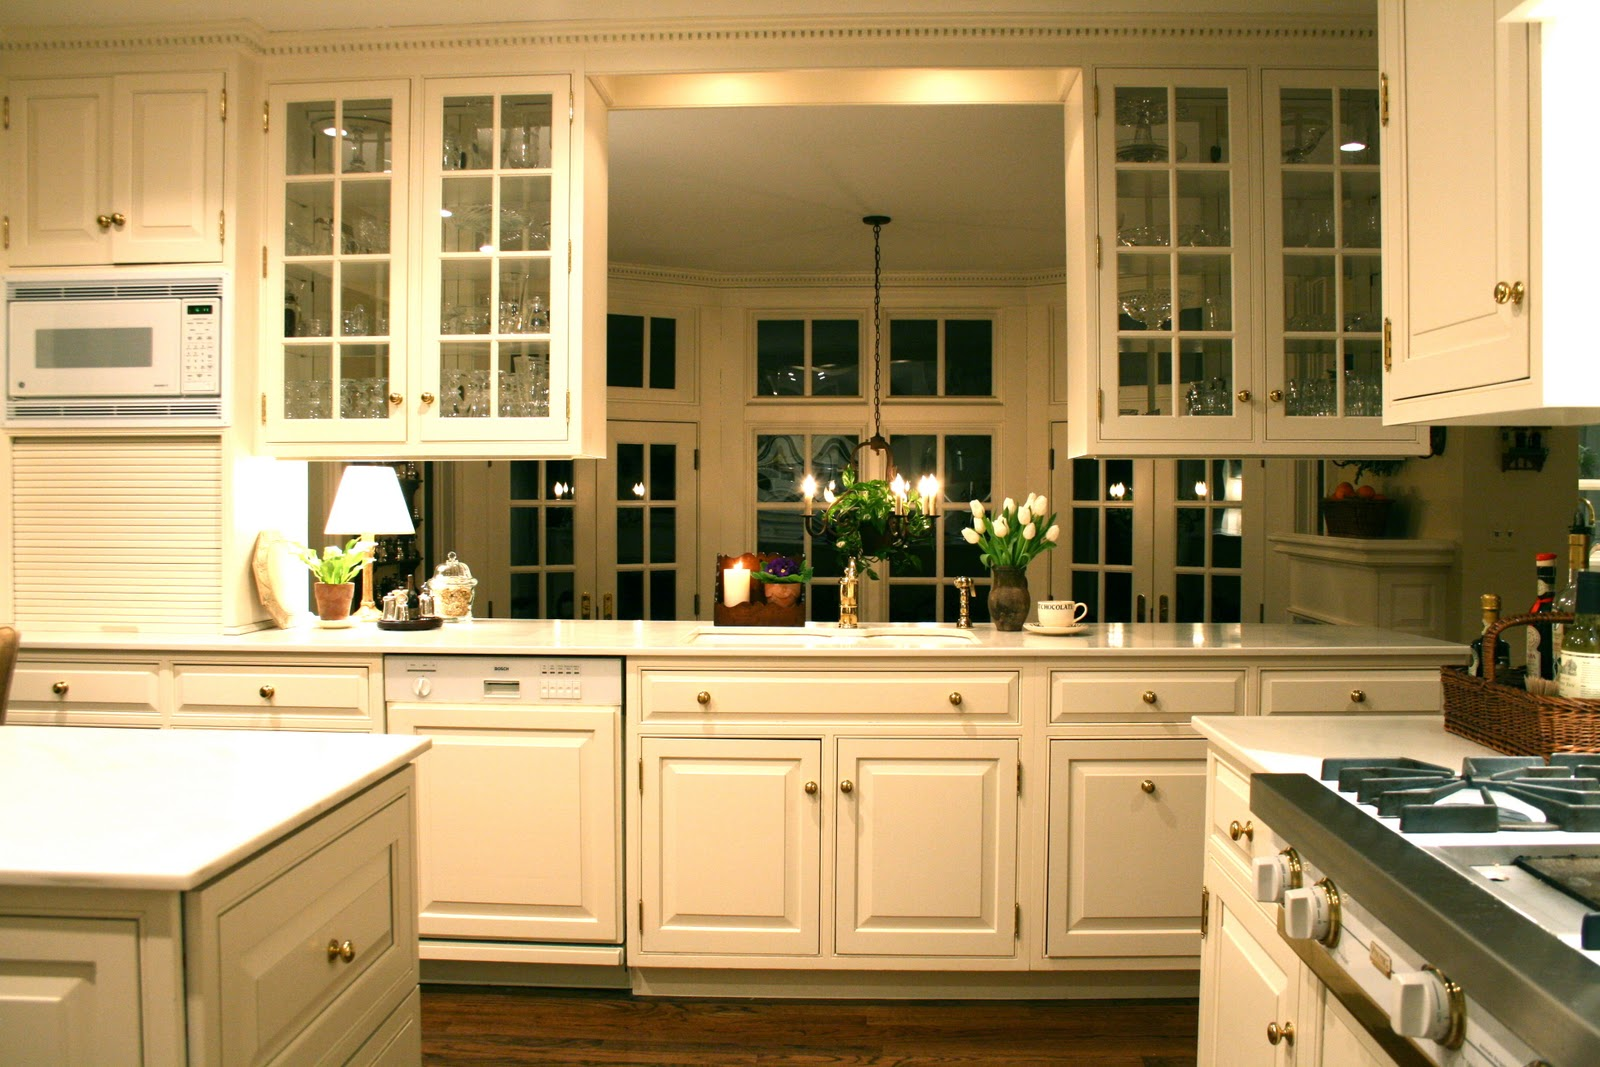 Antiqueaholics the heart of our home the kitchen for Hanging kitchen cabinets